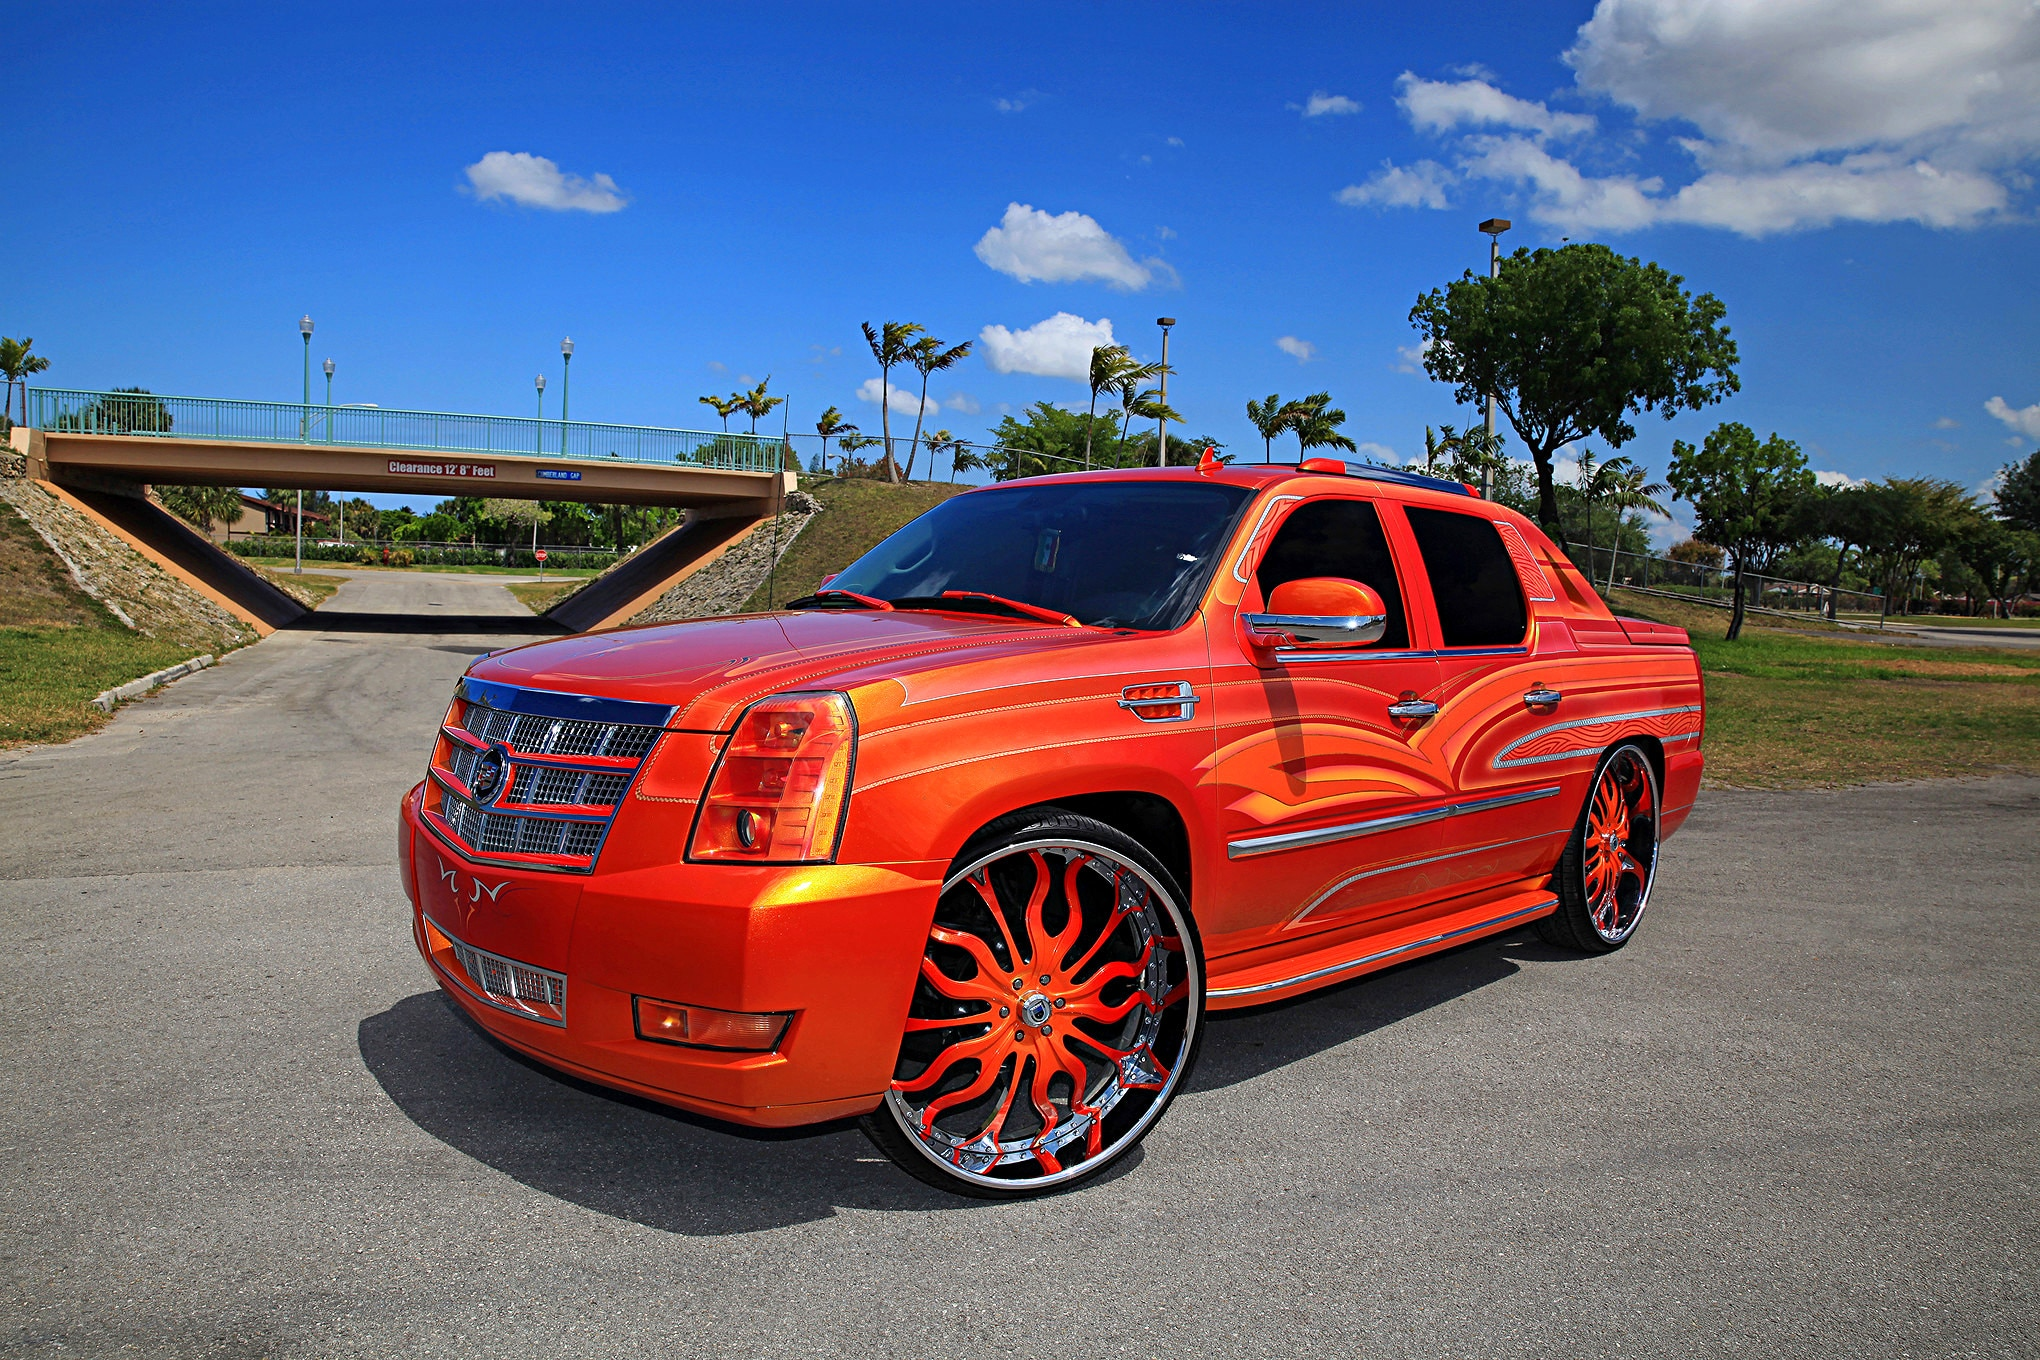 https://st.lowrider.com/uploads/sites/7/2016/08/2009-cadillac-escalade-ext-driver-side-front-view.jpg